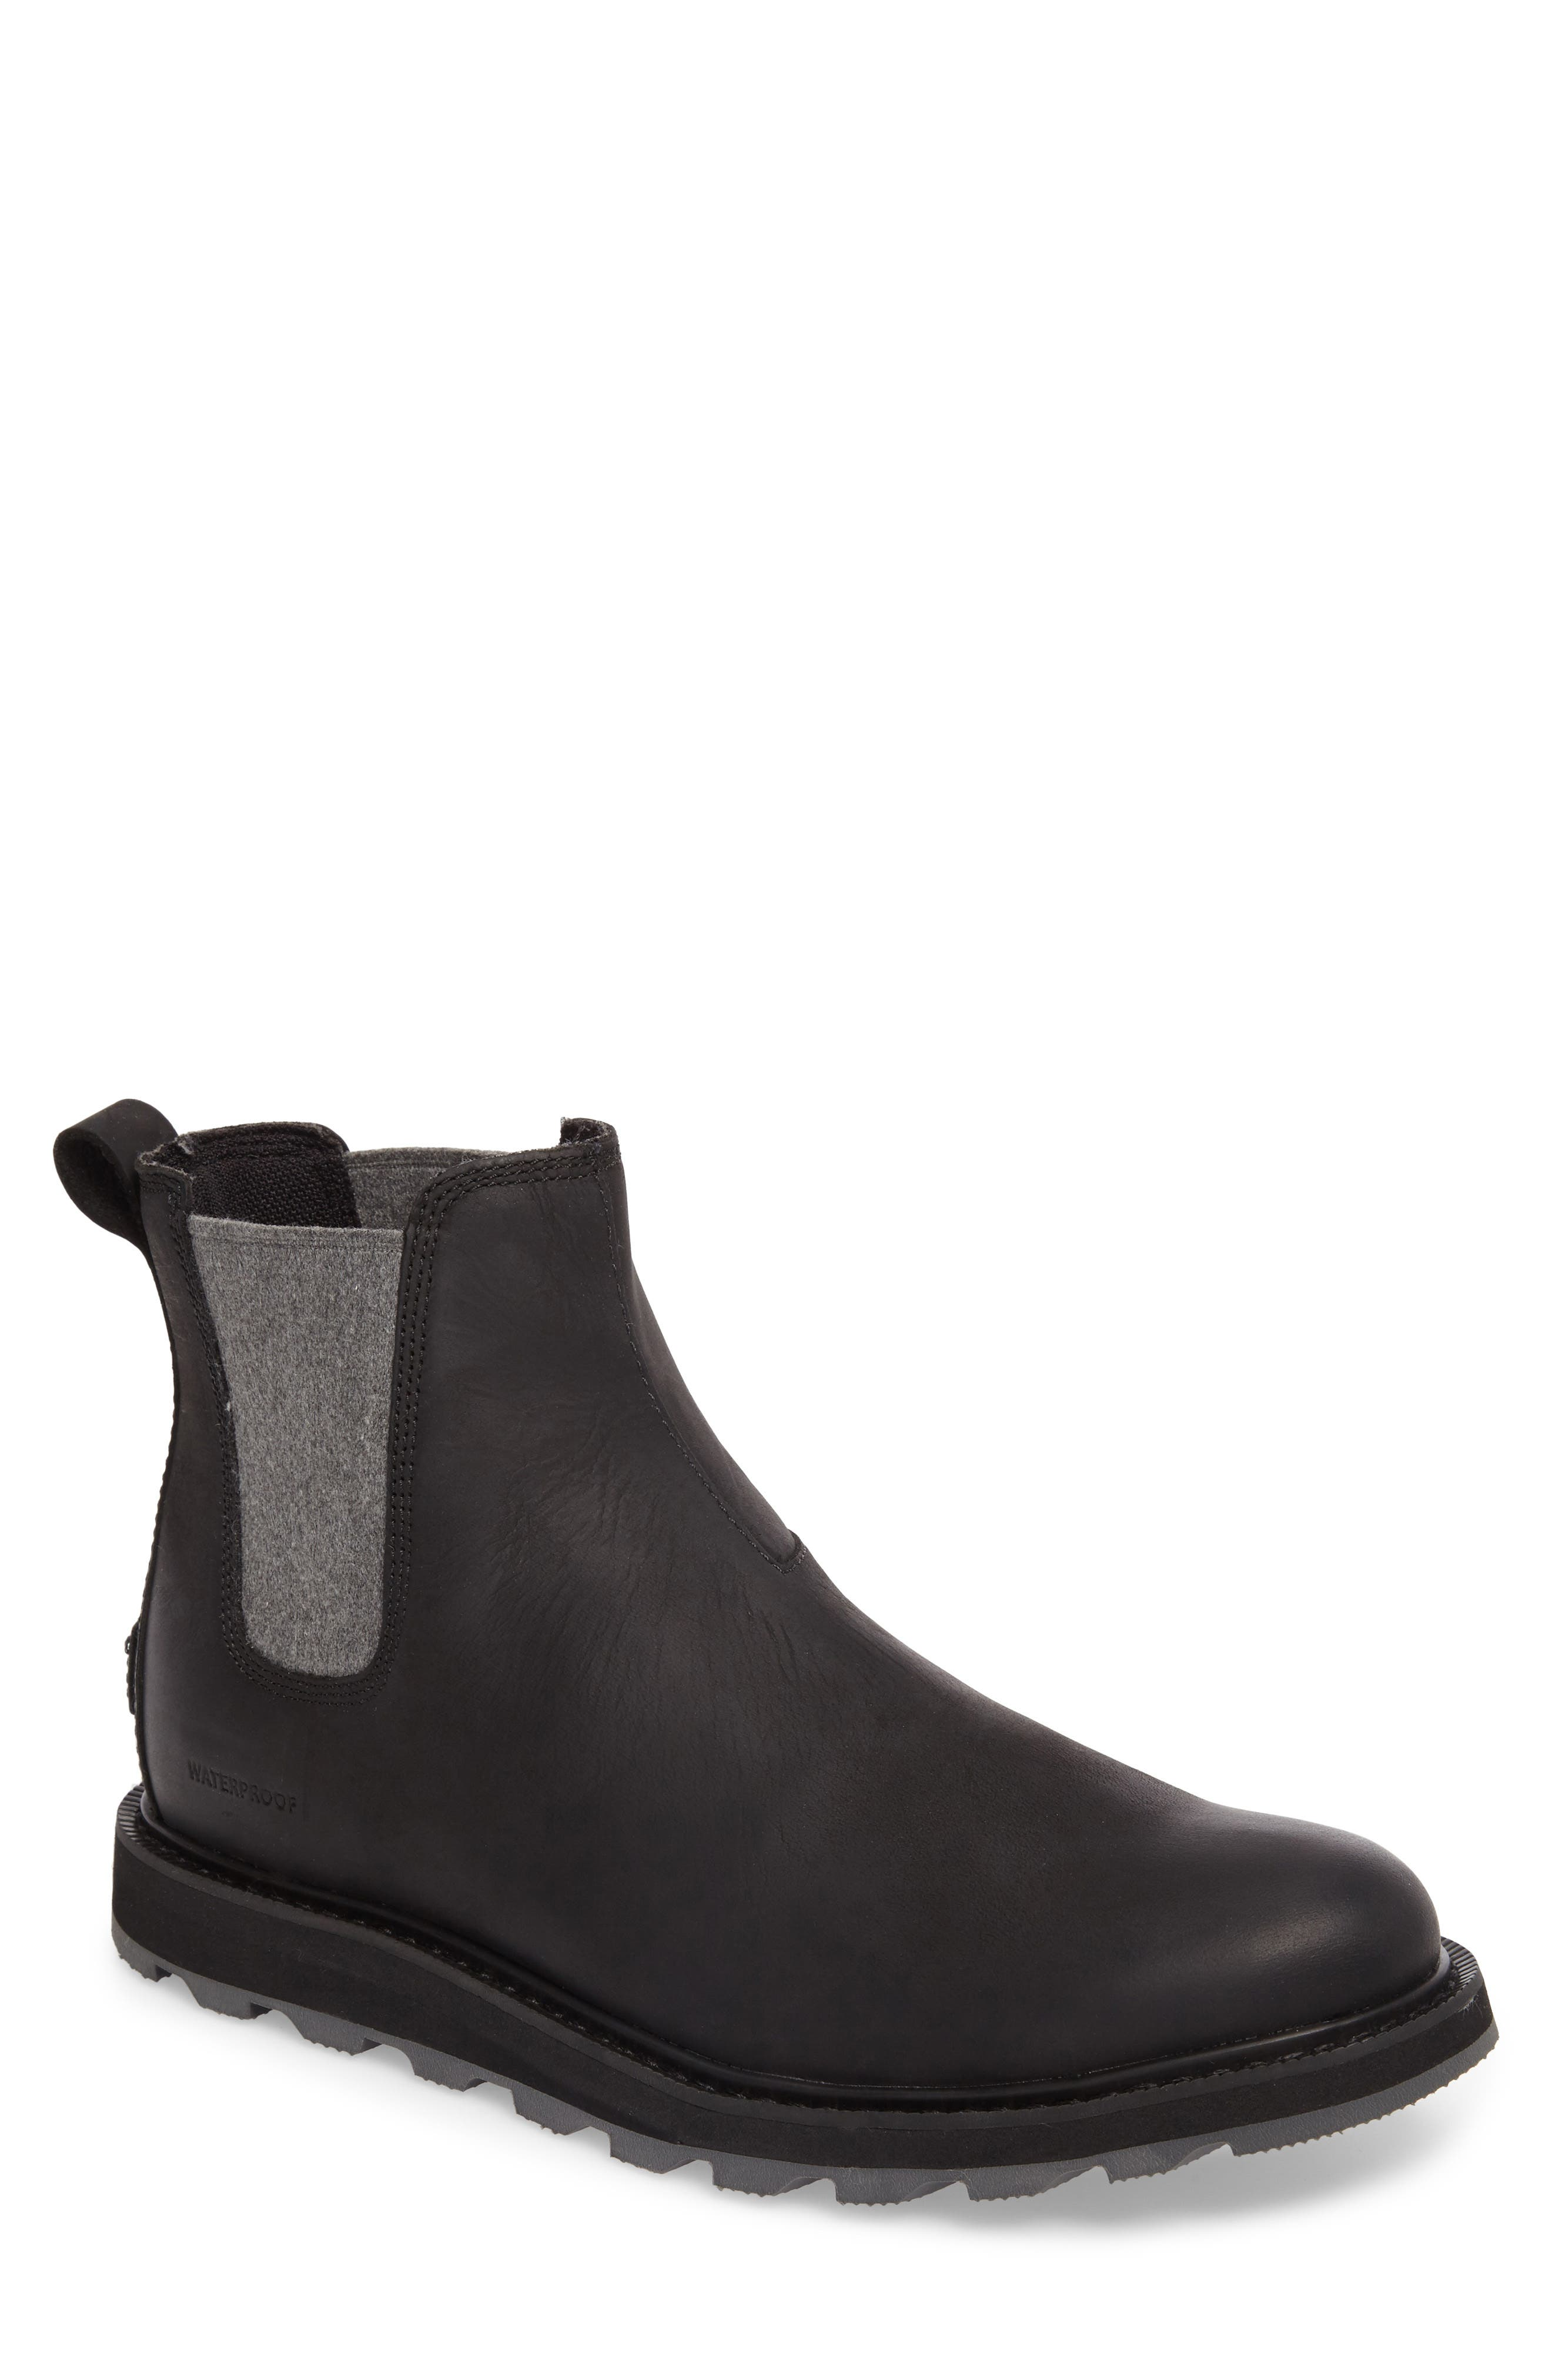 Madson Waterproof Chelsea Boot,                         Main,                         color, BLACK